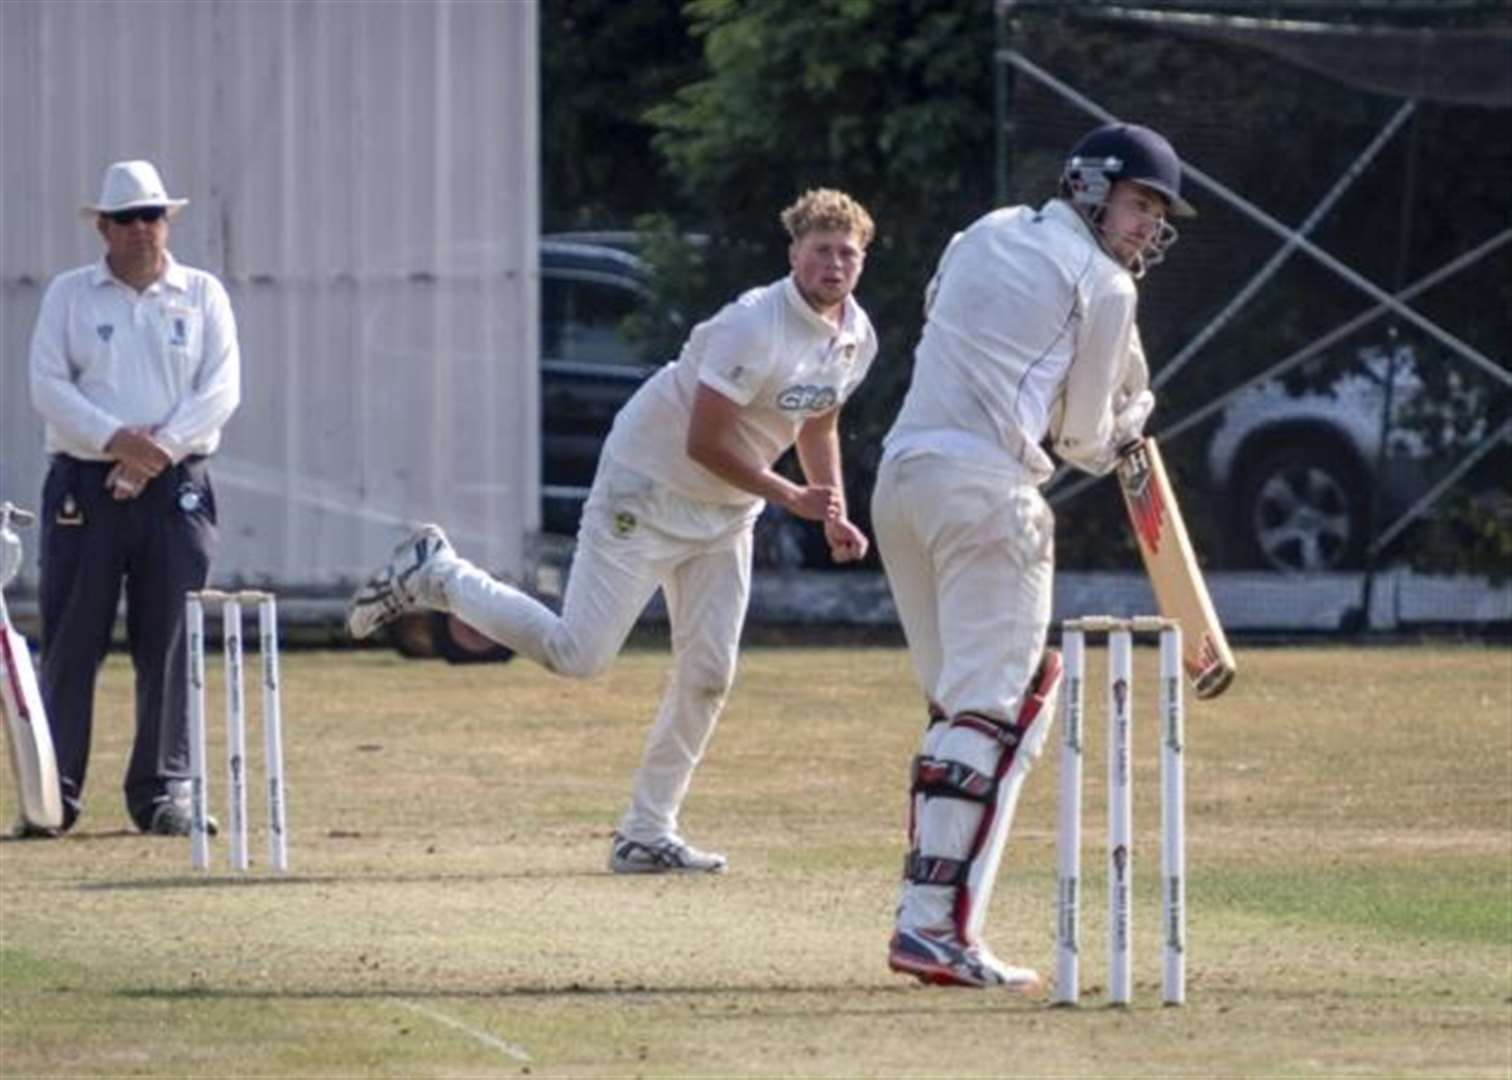 Foxton miss out on title with final day defeat to Saffron Walden